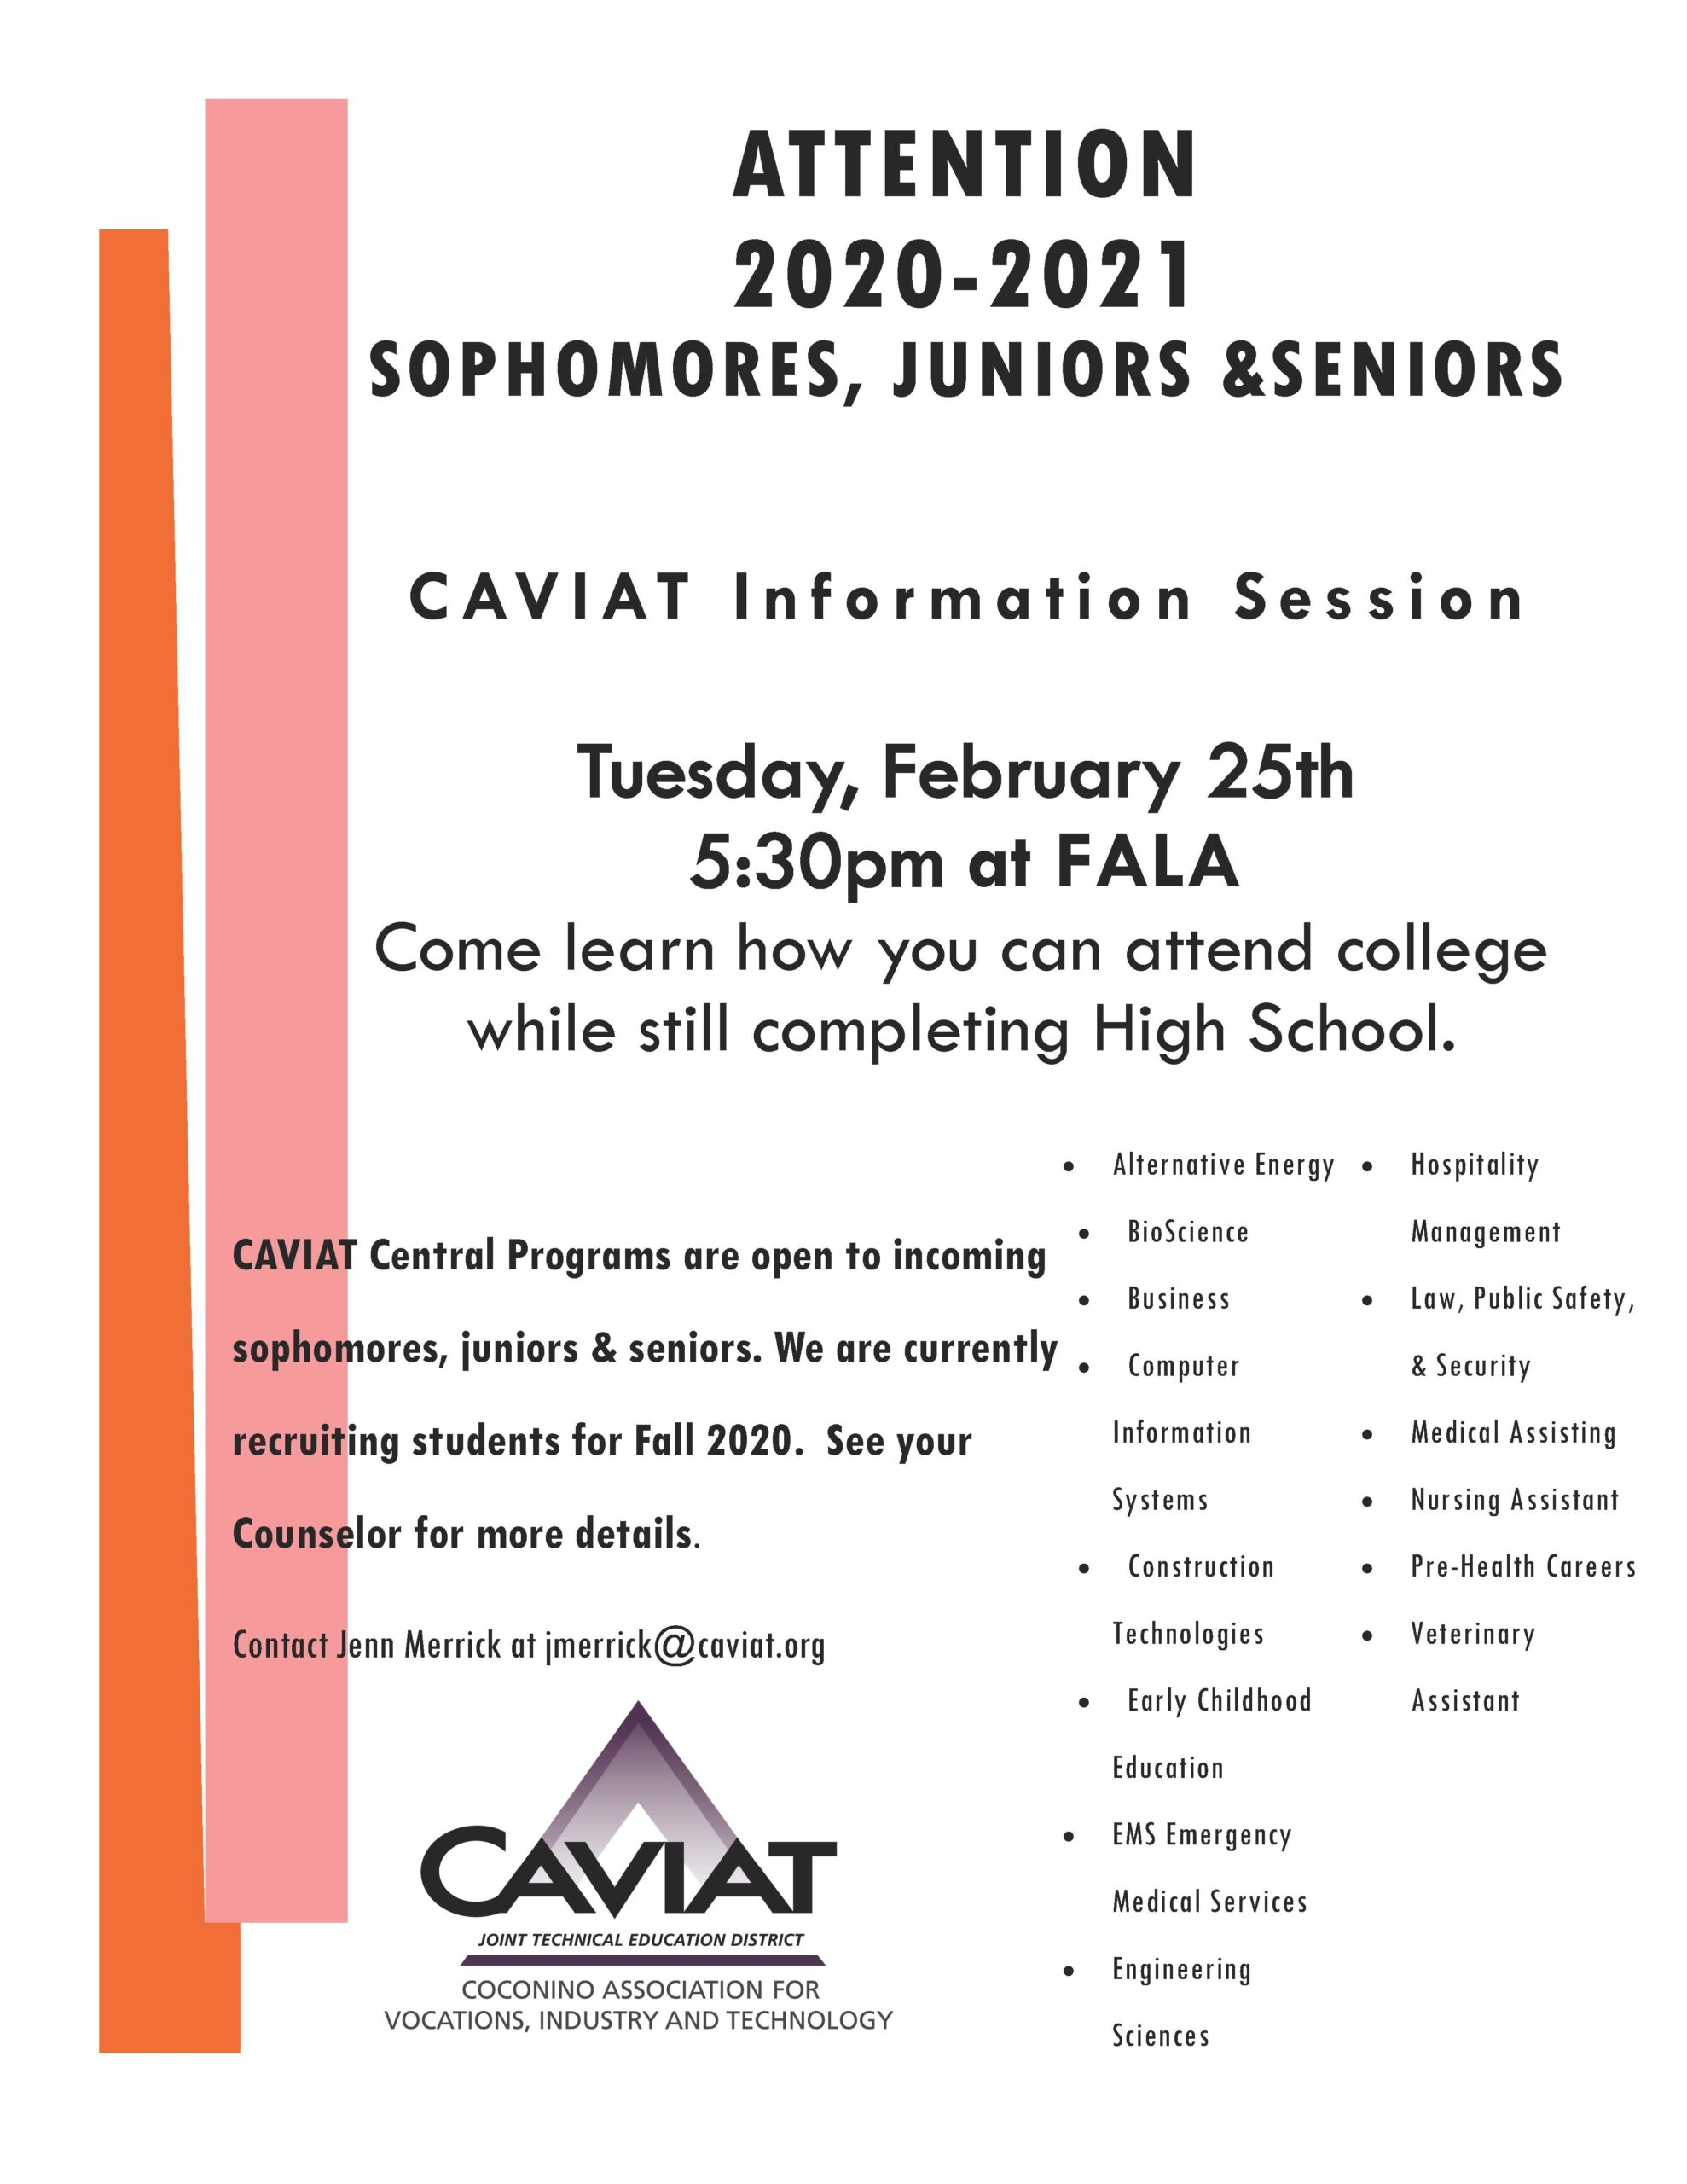 CAVIAT Information Session @ FALA Campus